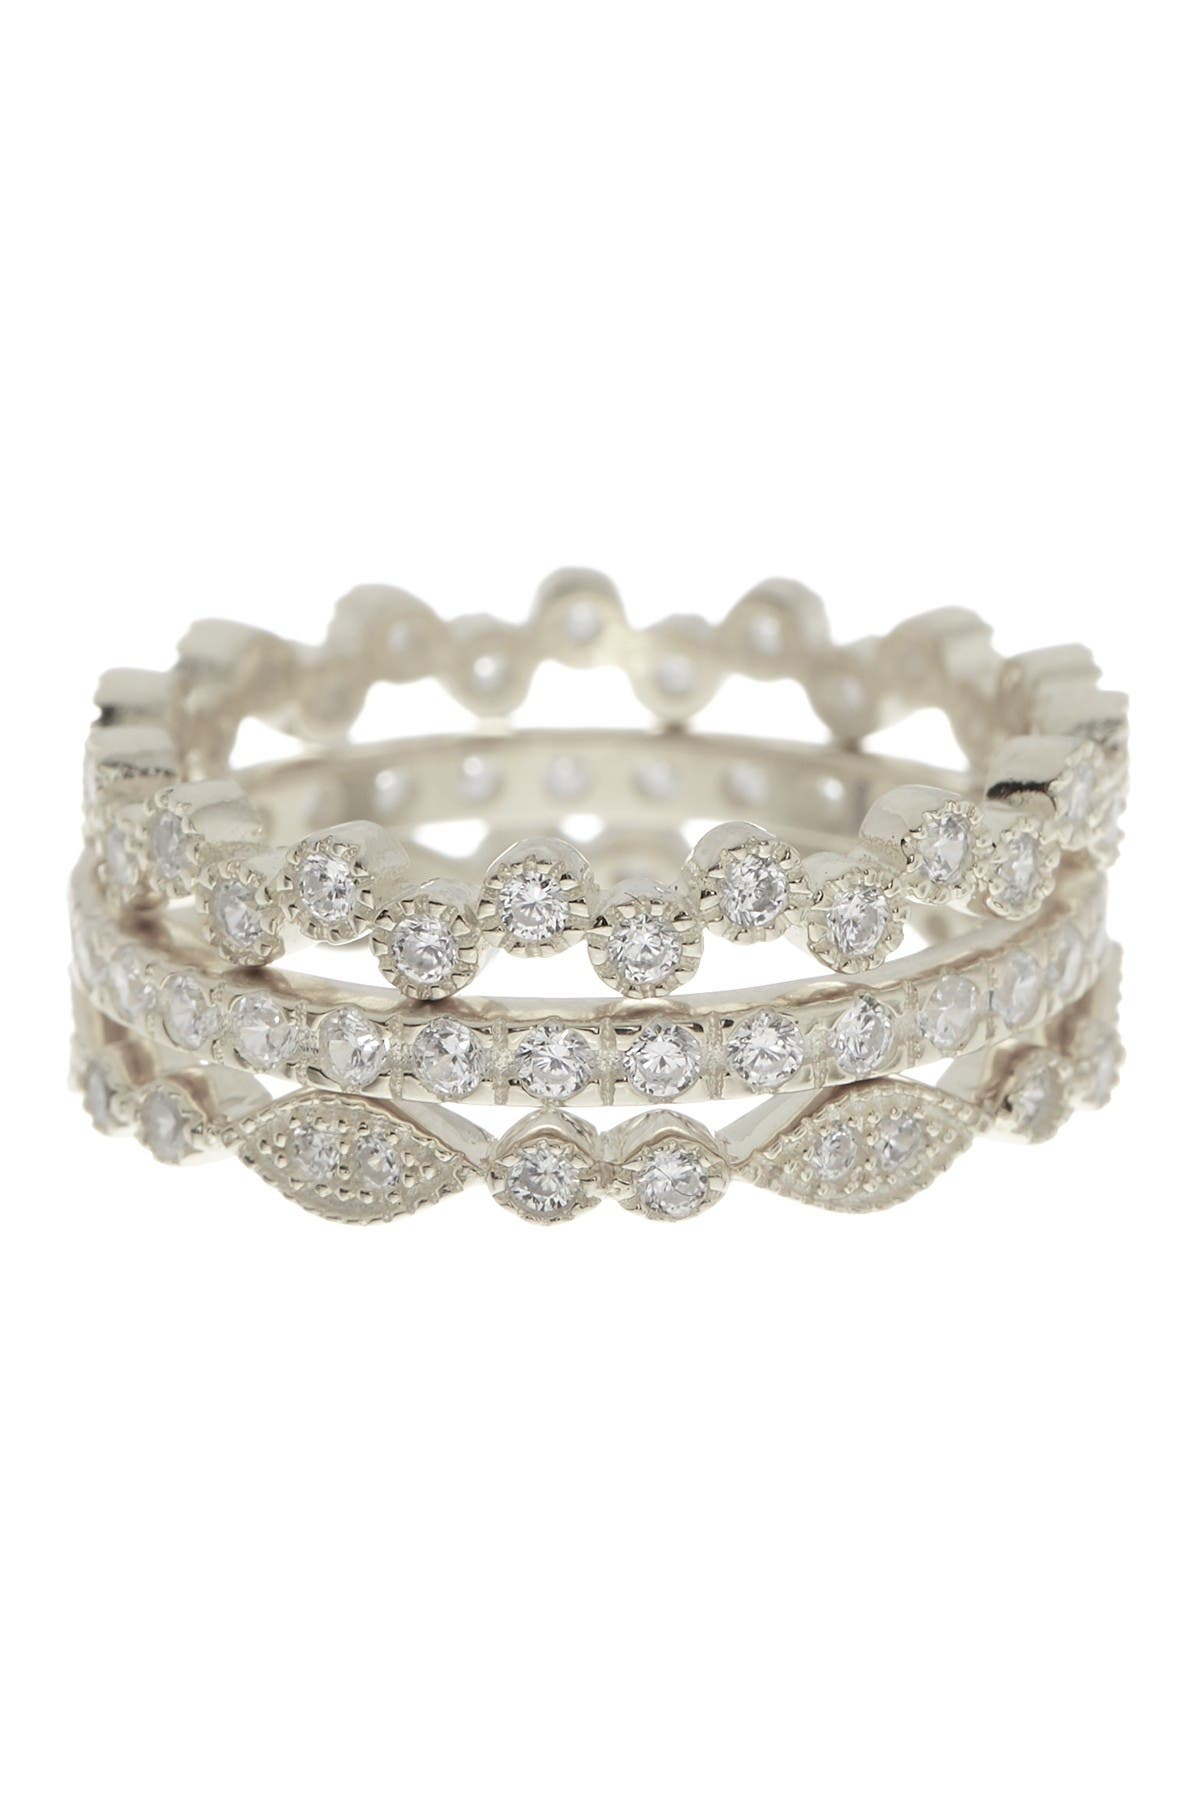 Image of Sterling Forever Sterling Silver Cubic Zirconia Stackable Ring Set